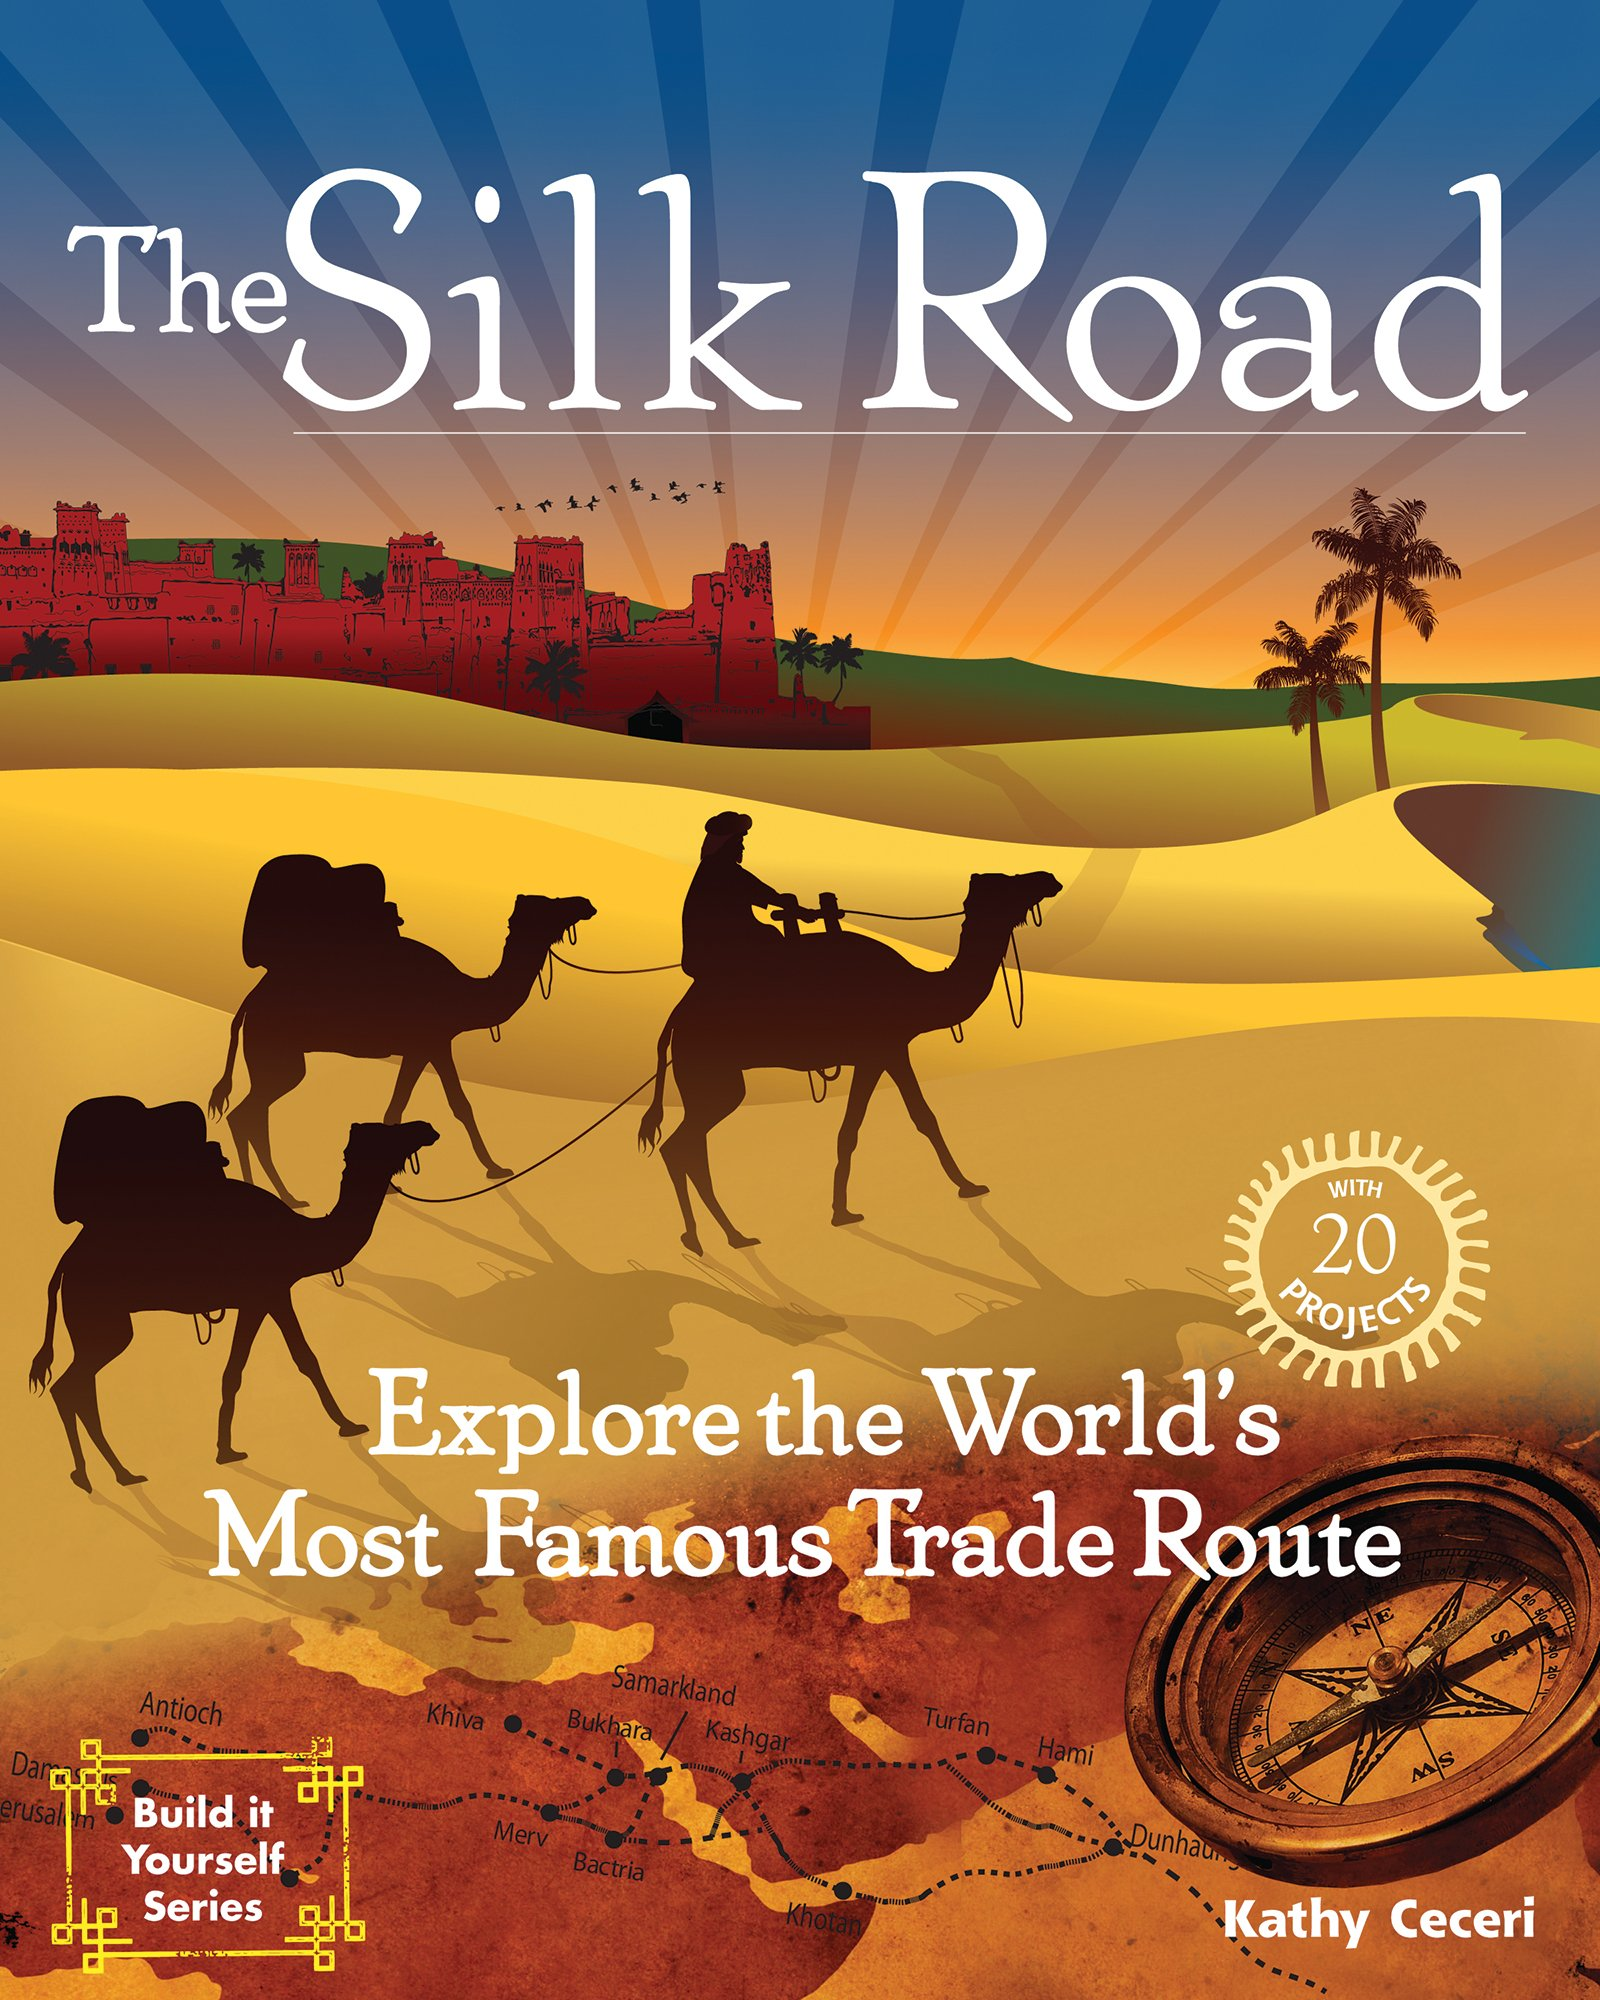 The Silk Road: Explore the World's Most Famous Trade Route with 20 Projects (Build It Yourself) by Nomad Press (Image #1)